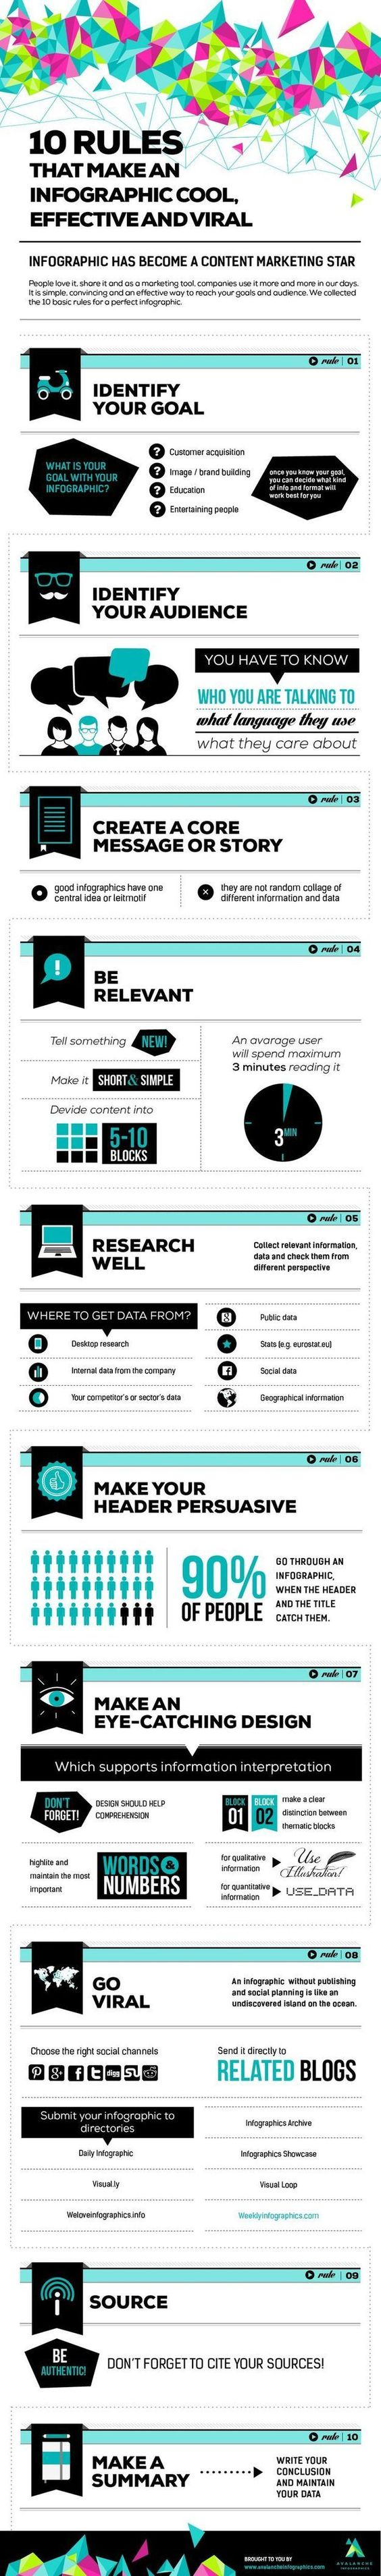 10 #Ways To Make Your #Infographic Cool, Connected and Viral [infographic]